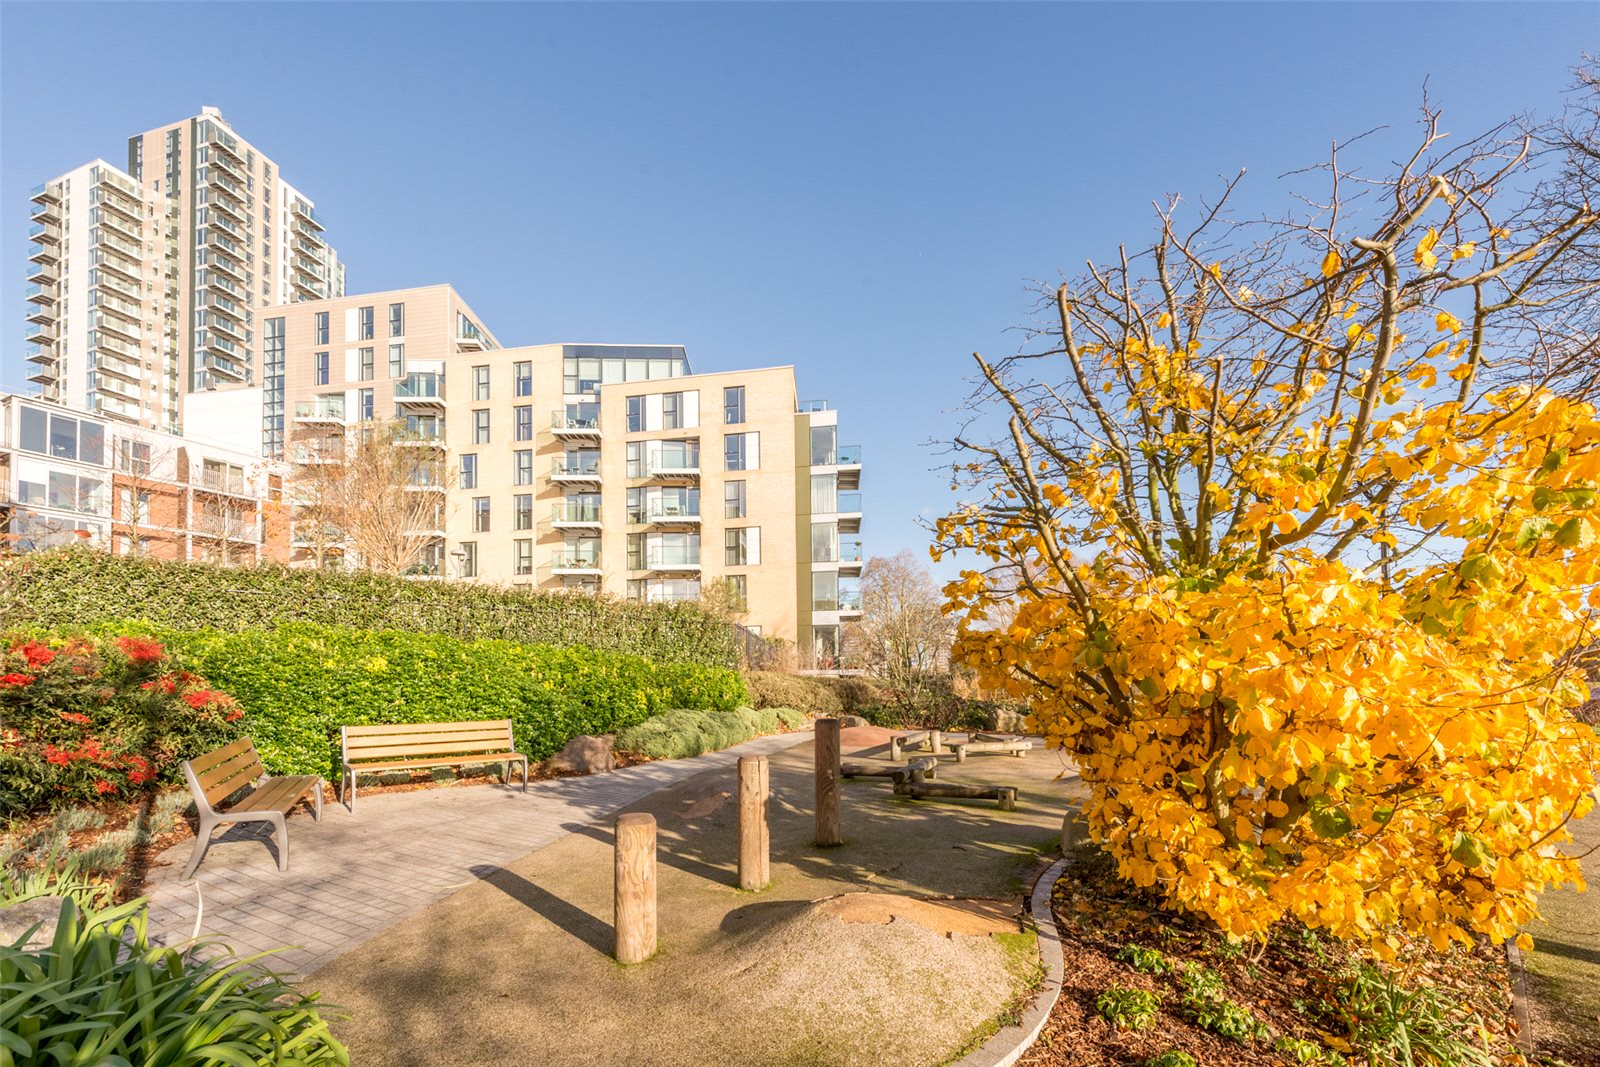 3 Bedrooms Apartment Flat for sale in Sandpiper, Woodberry Down, Finsbury Park, London, N4